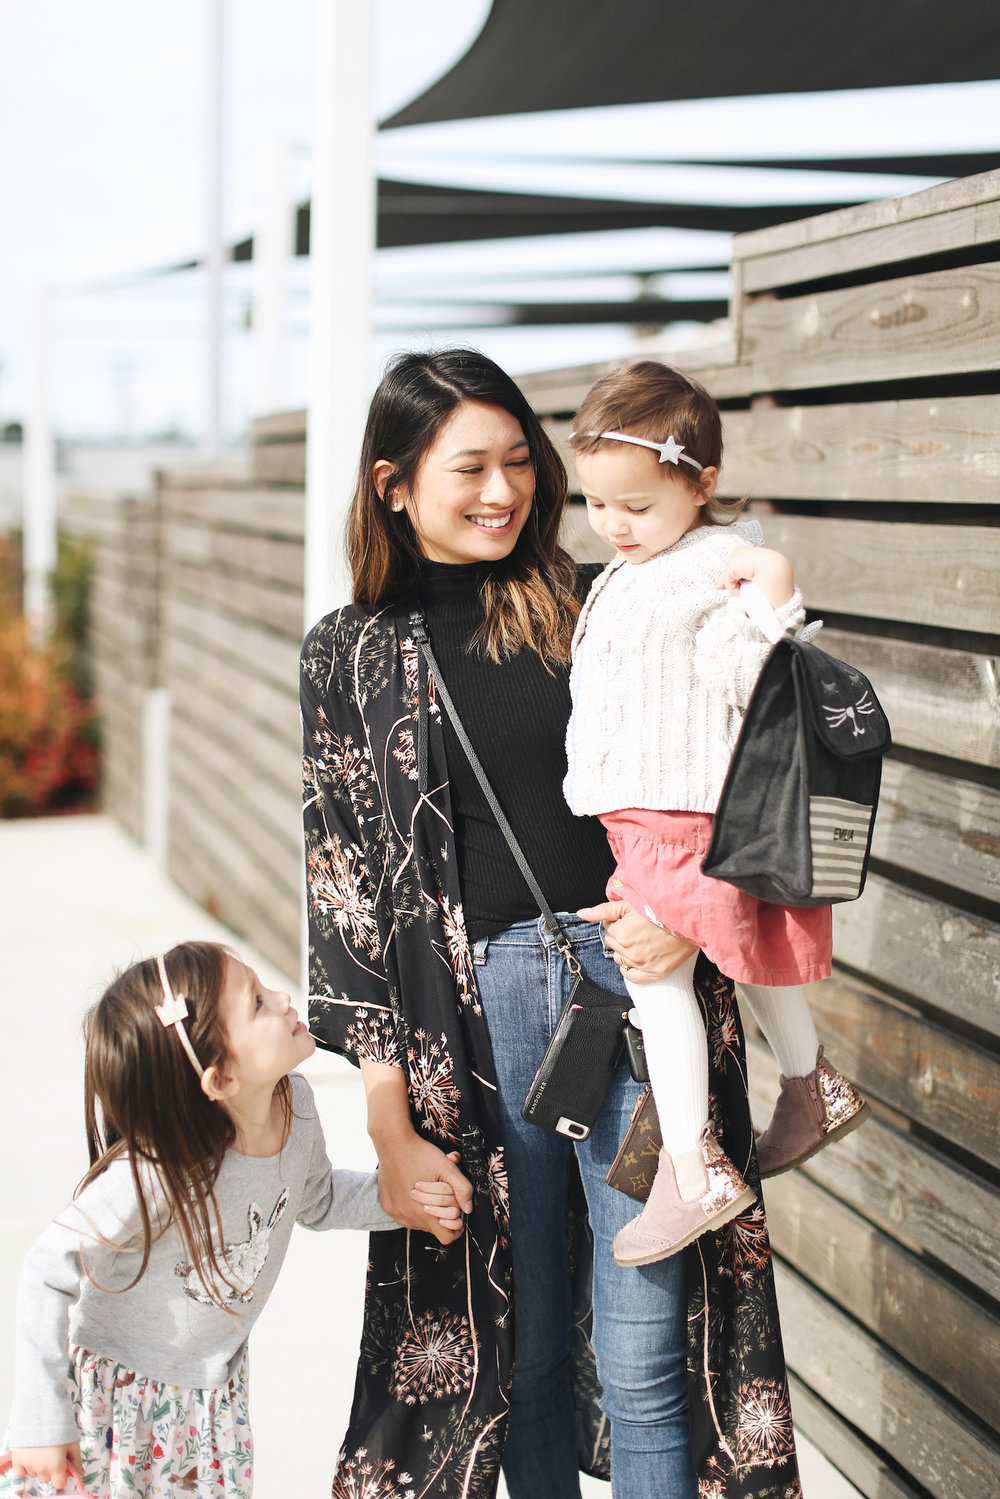 Boden girls dresses | A Week Of Polished & Professional Outfits With Sustainable Lifestyle Blogger Jonilyn Brown on The Good Trade